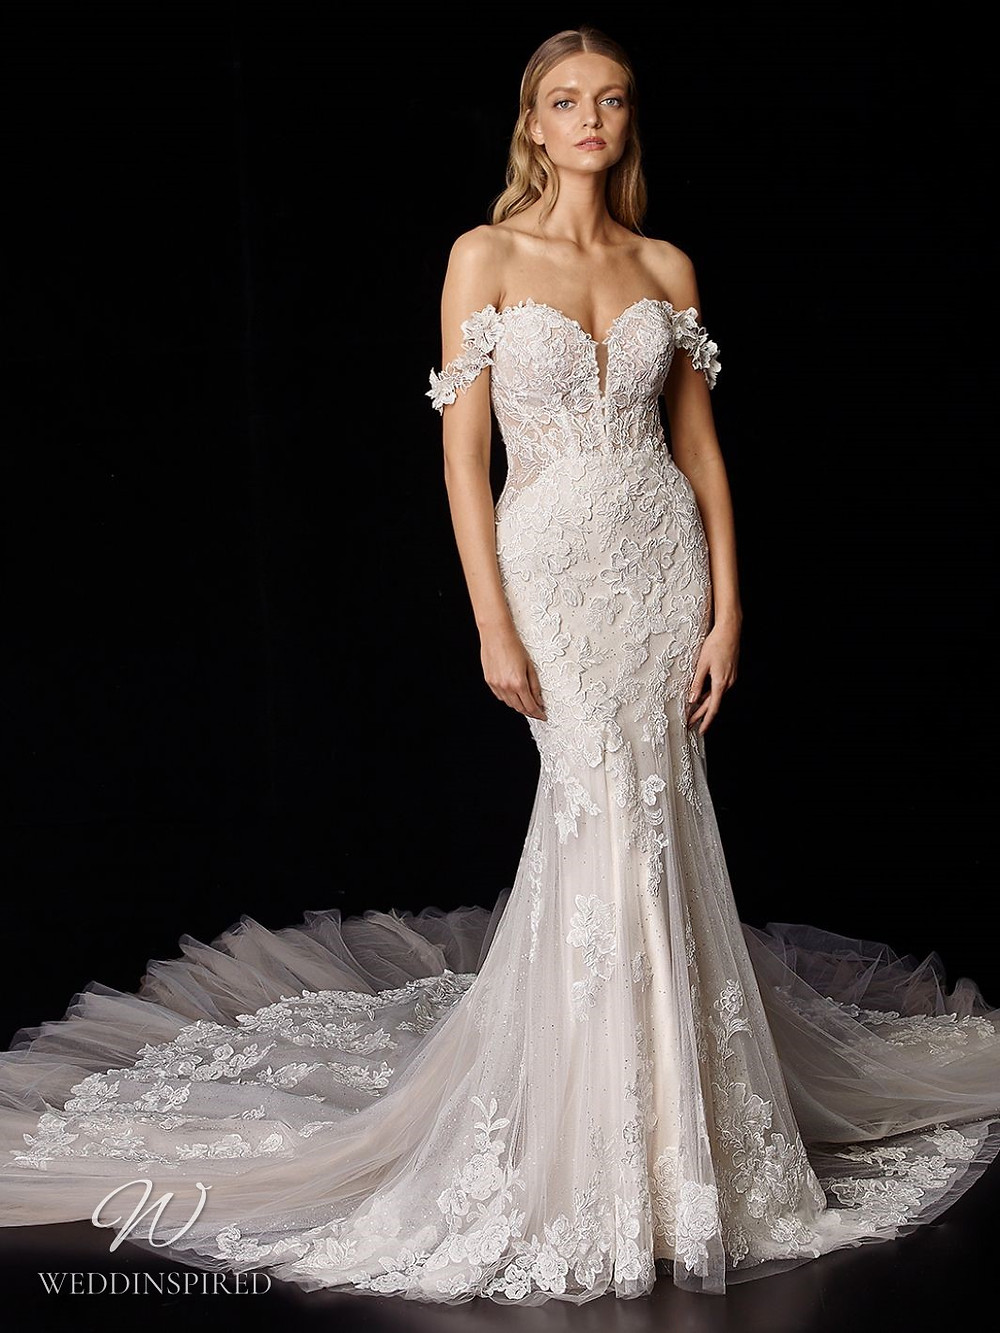 An Enzoani off the shoulder lace and tulle mermaid wedding dress with a train